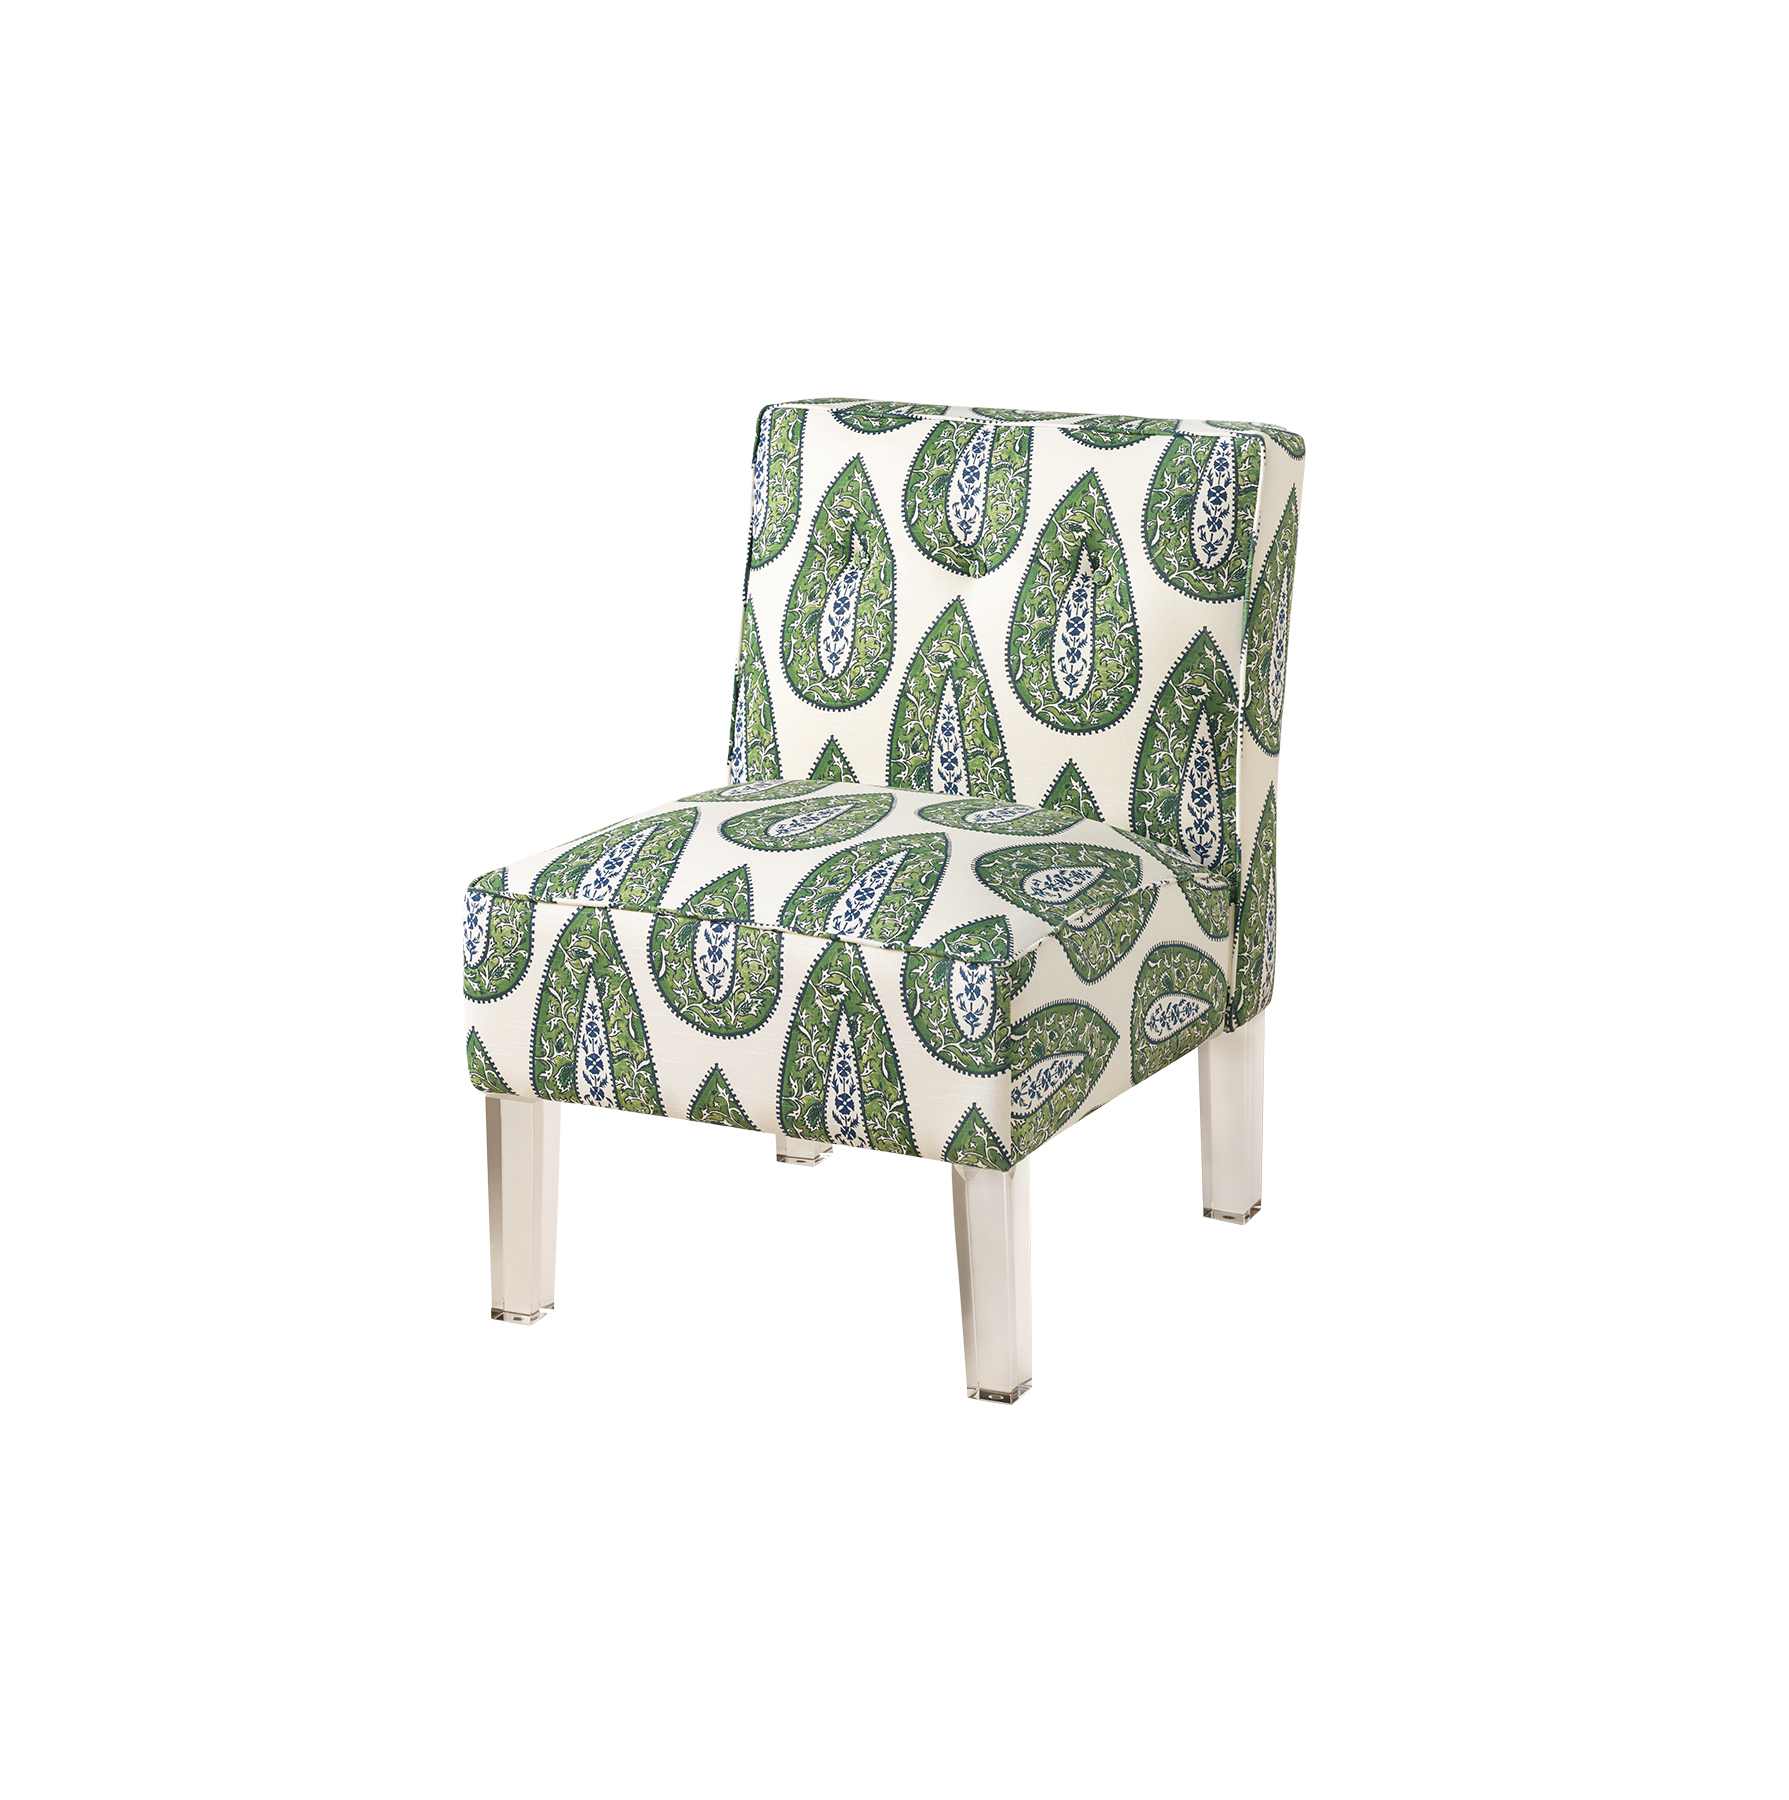 Randen Upholstered Chair